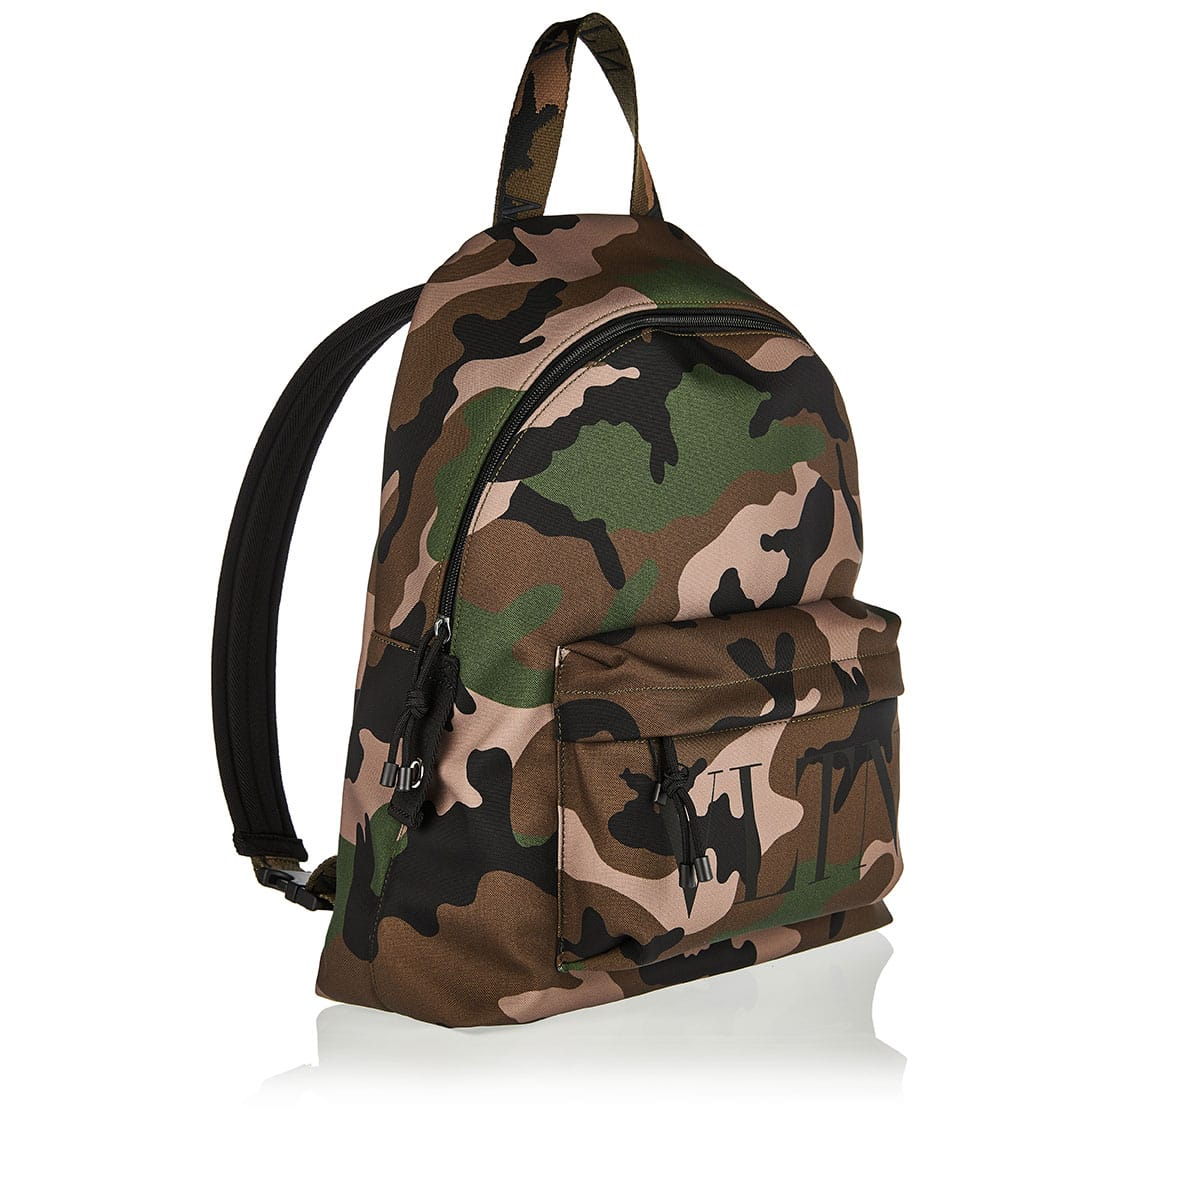 VLTN camouflage nylon backpack